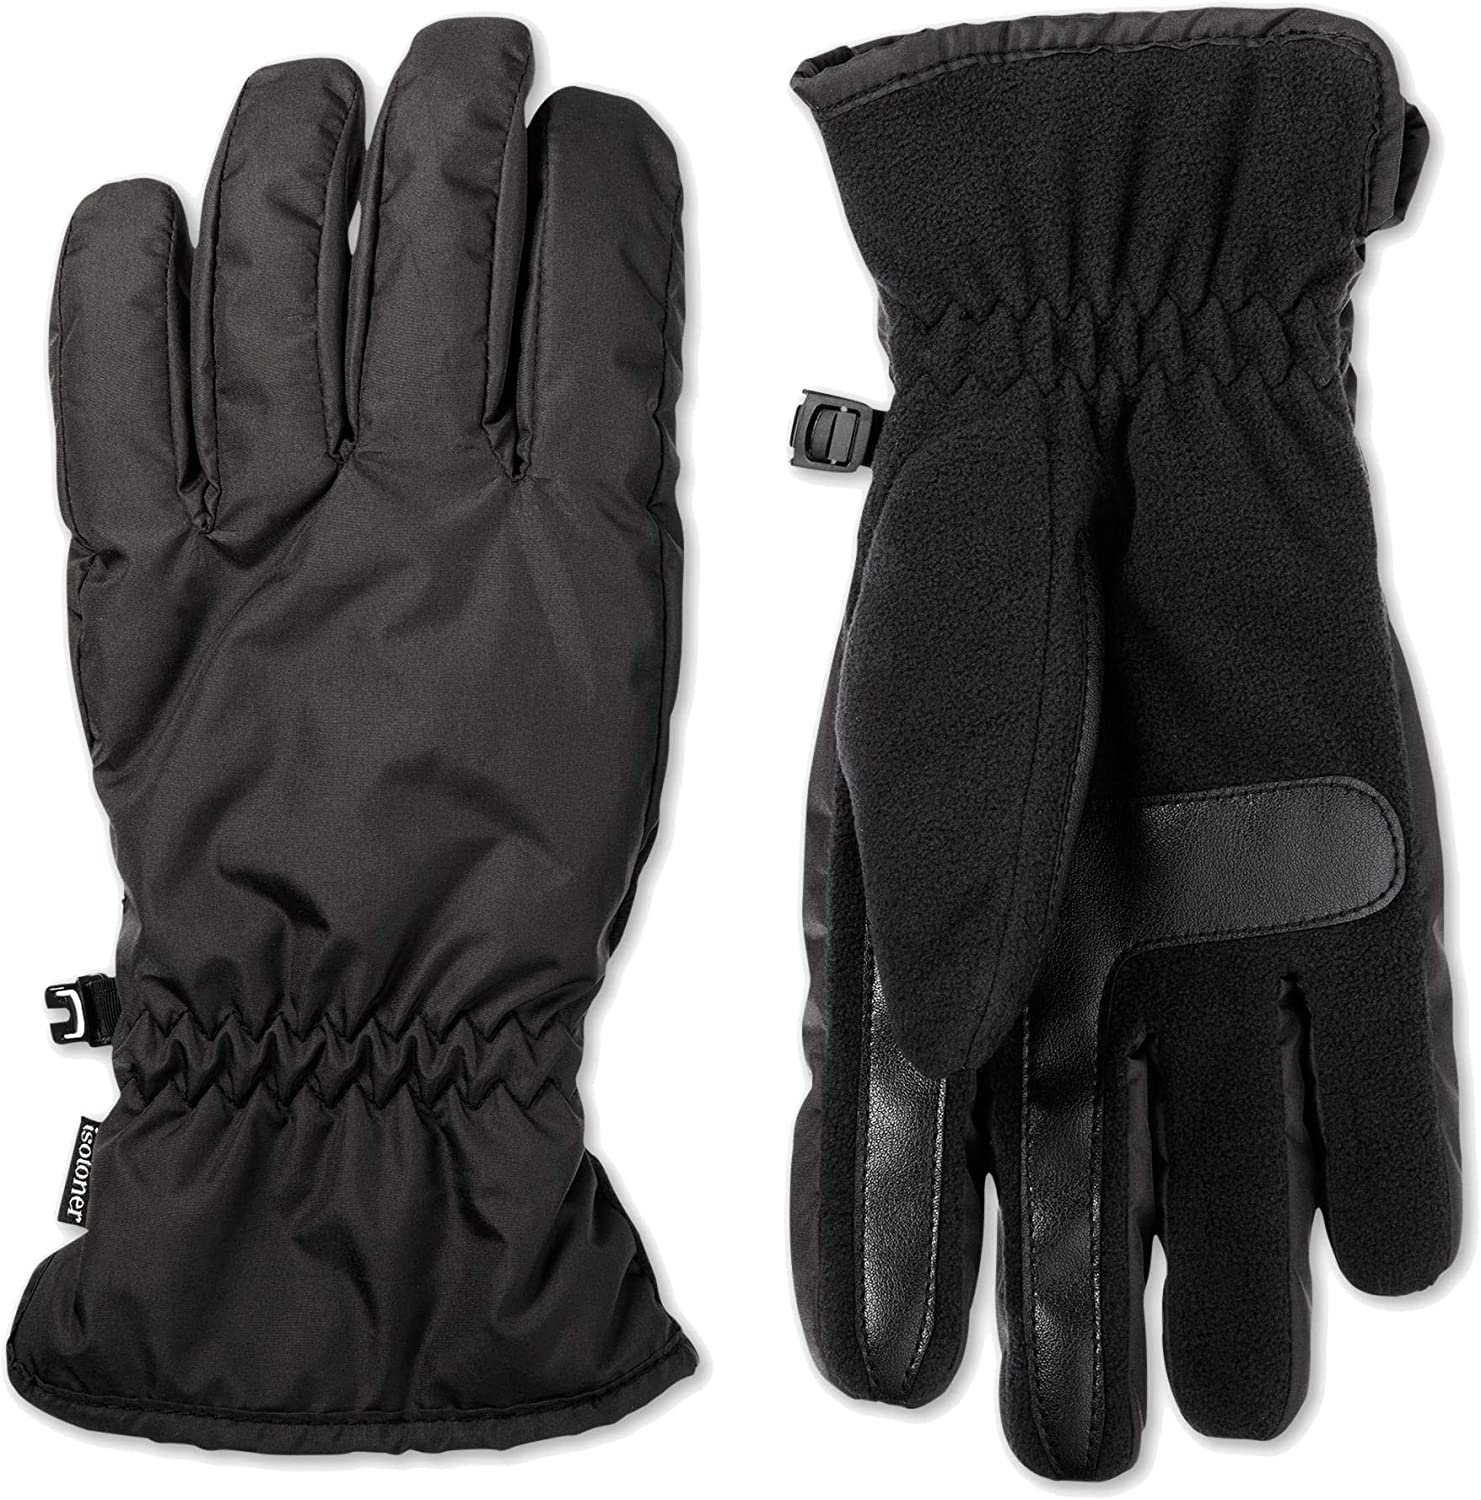 Isotoner Mens Smart Dri Max 56% OFF Fleece Gloves Winter Lined Milwaukee Mall Touch Screen